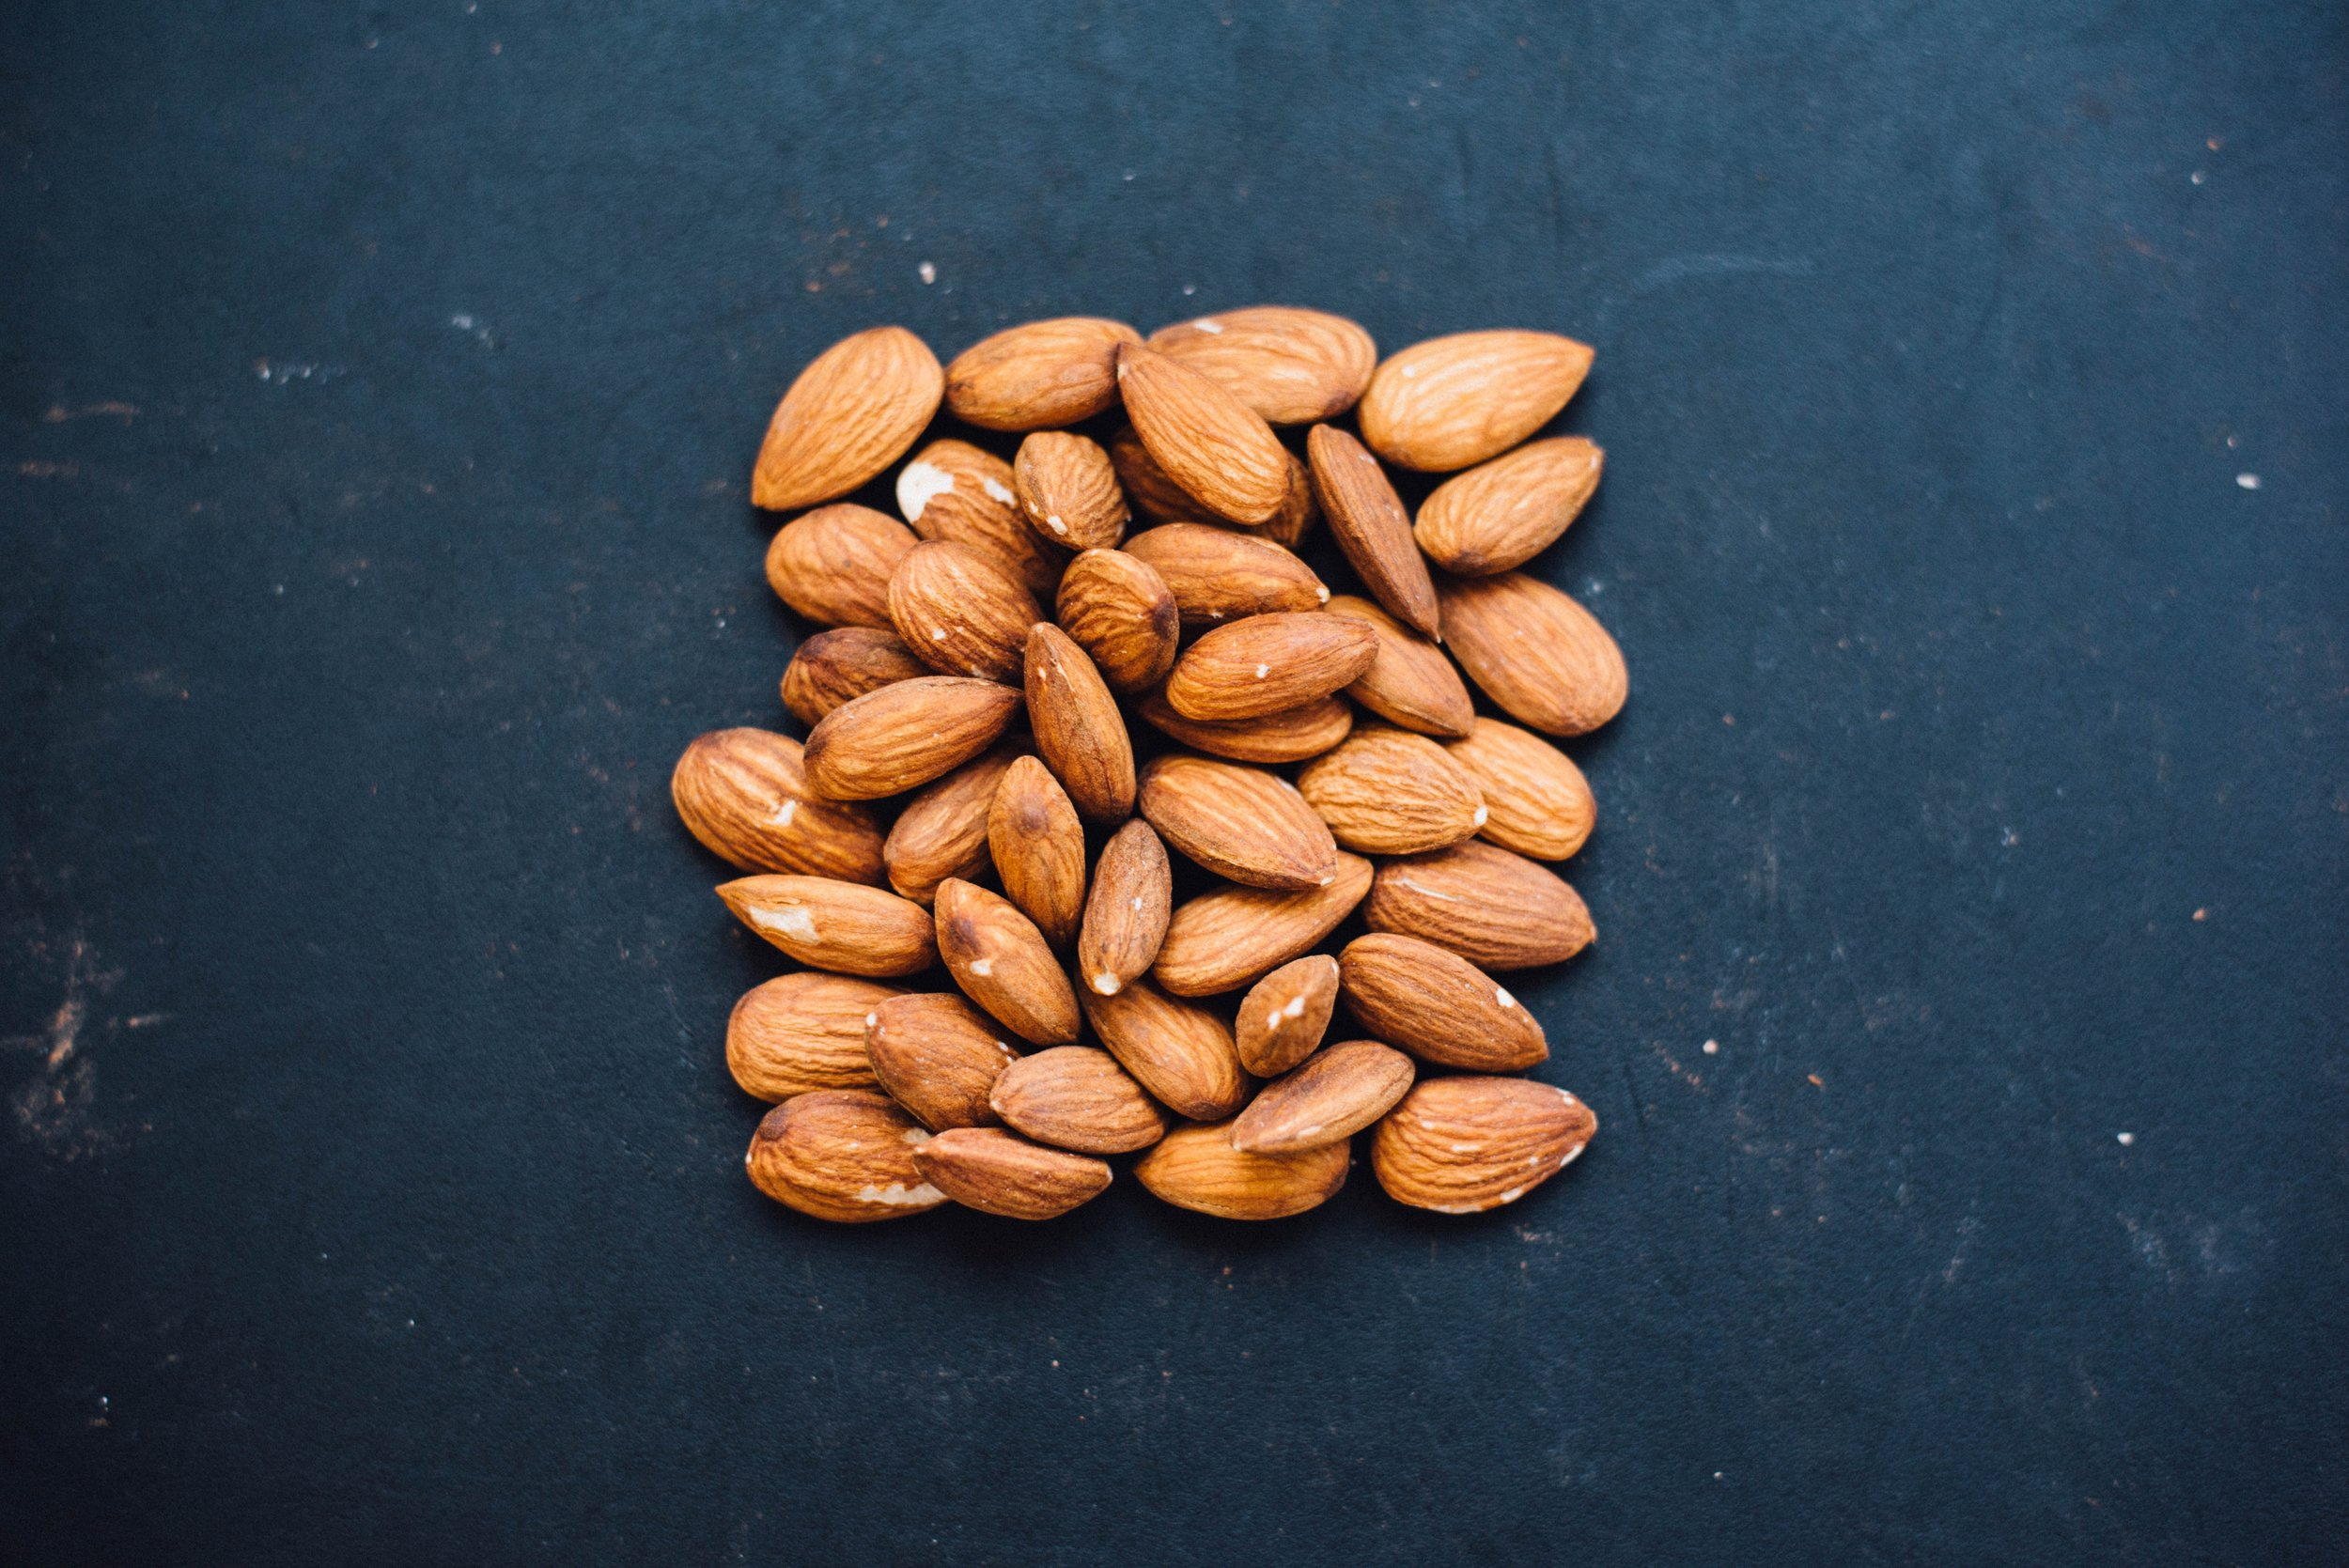 Almonds - The Youth Academy